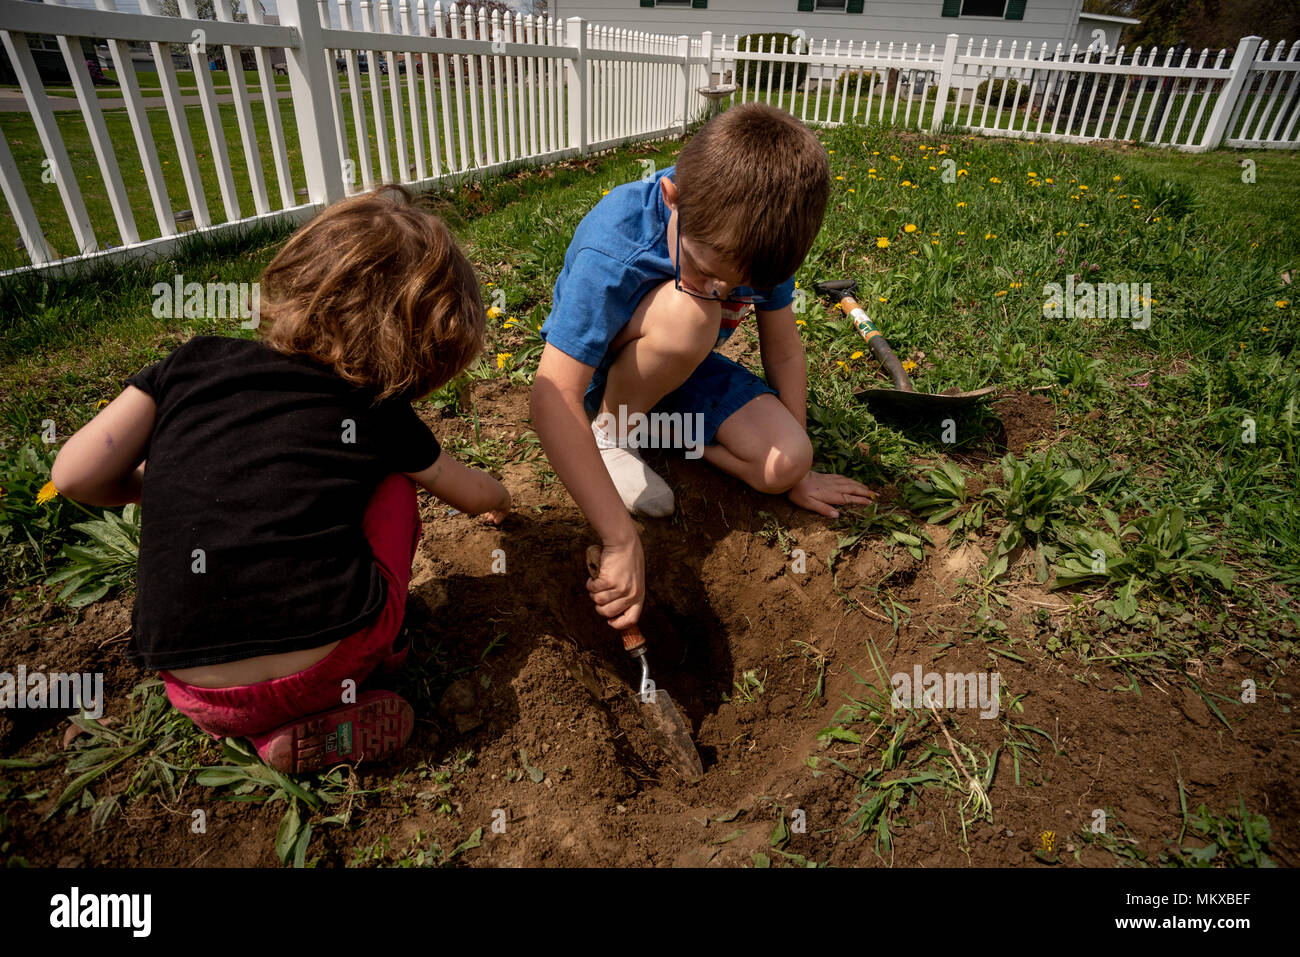 Two children dig in the dirt in a garden. - Stock Image